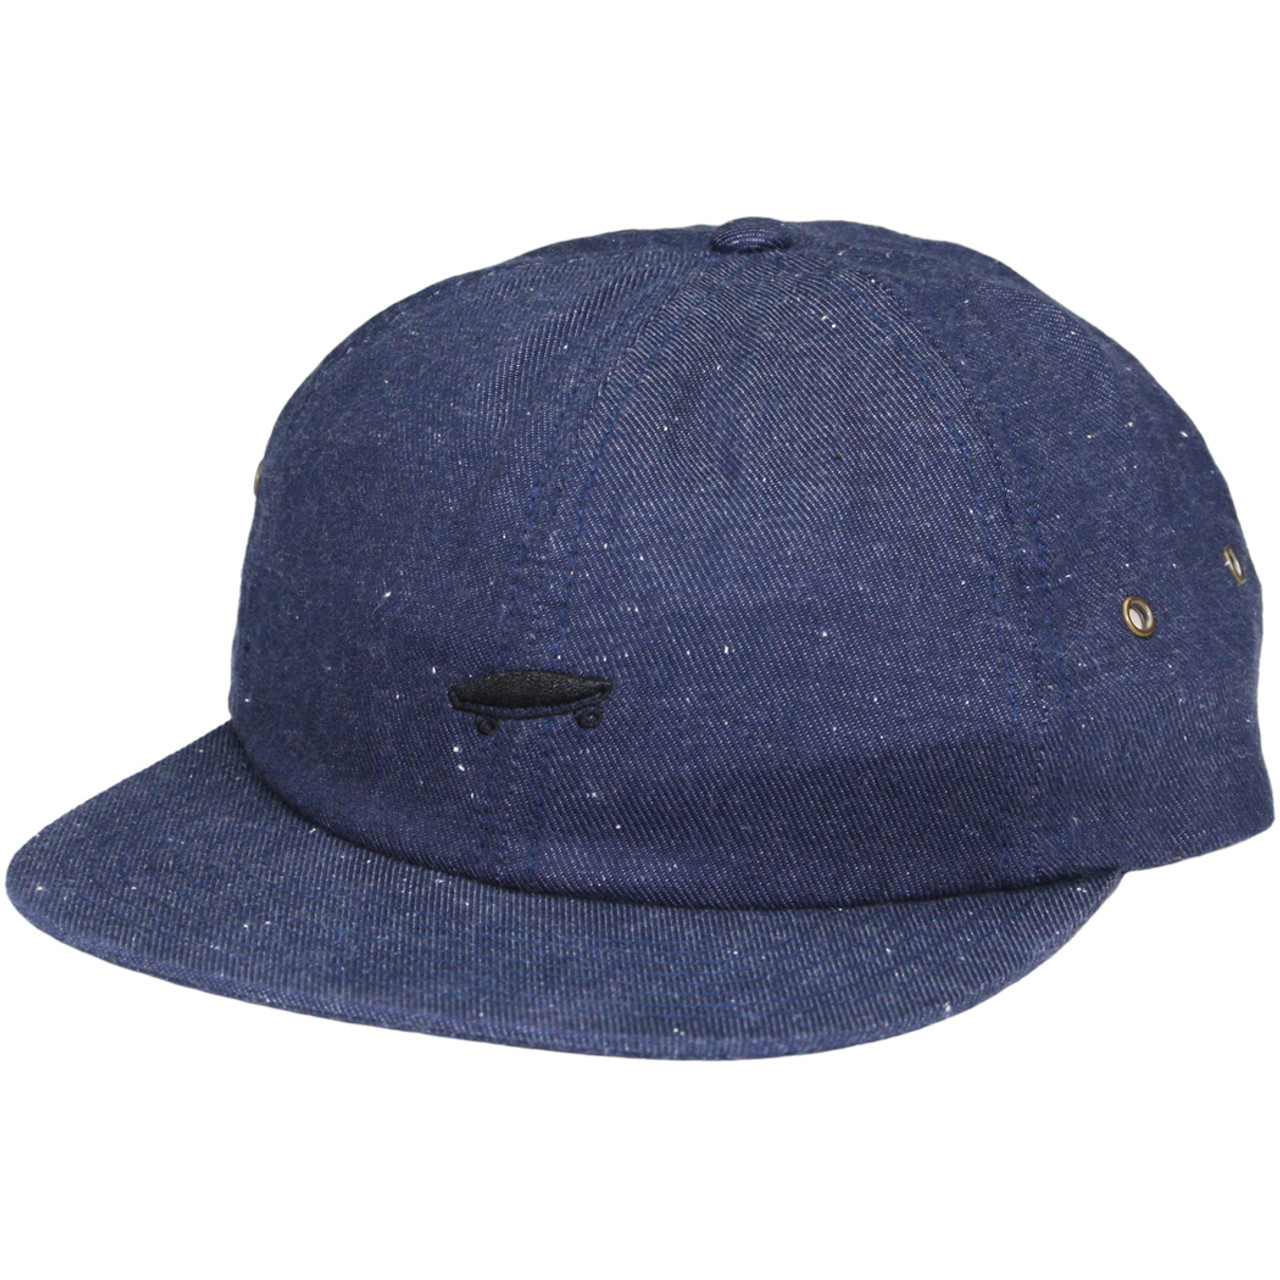 c5335a2100a Vans Hat - Salton II - Dark Denim - Surf and Dirt